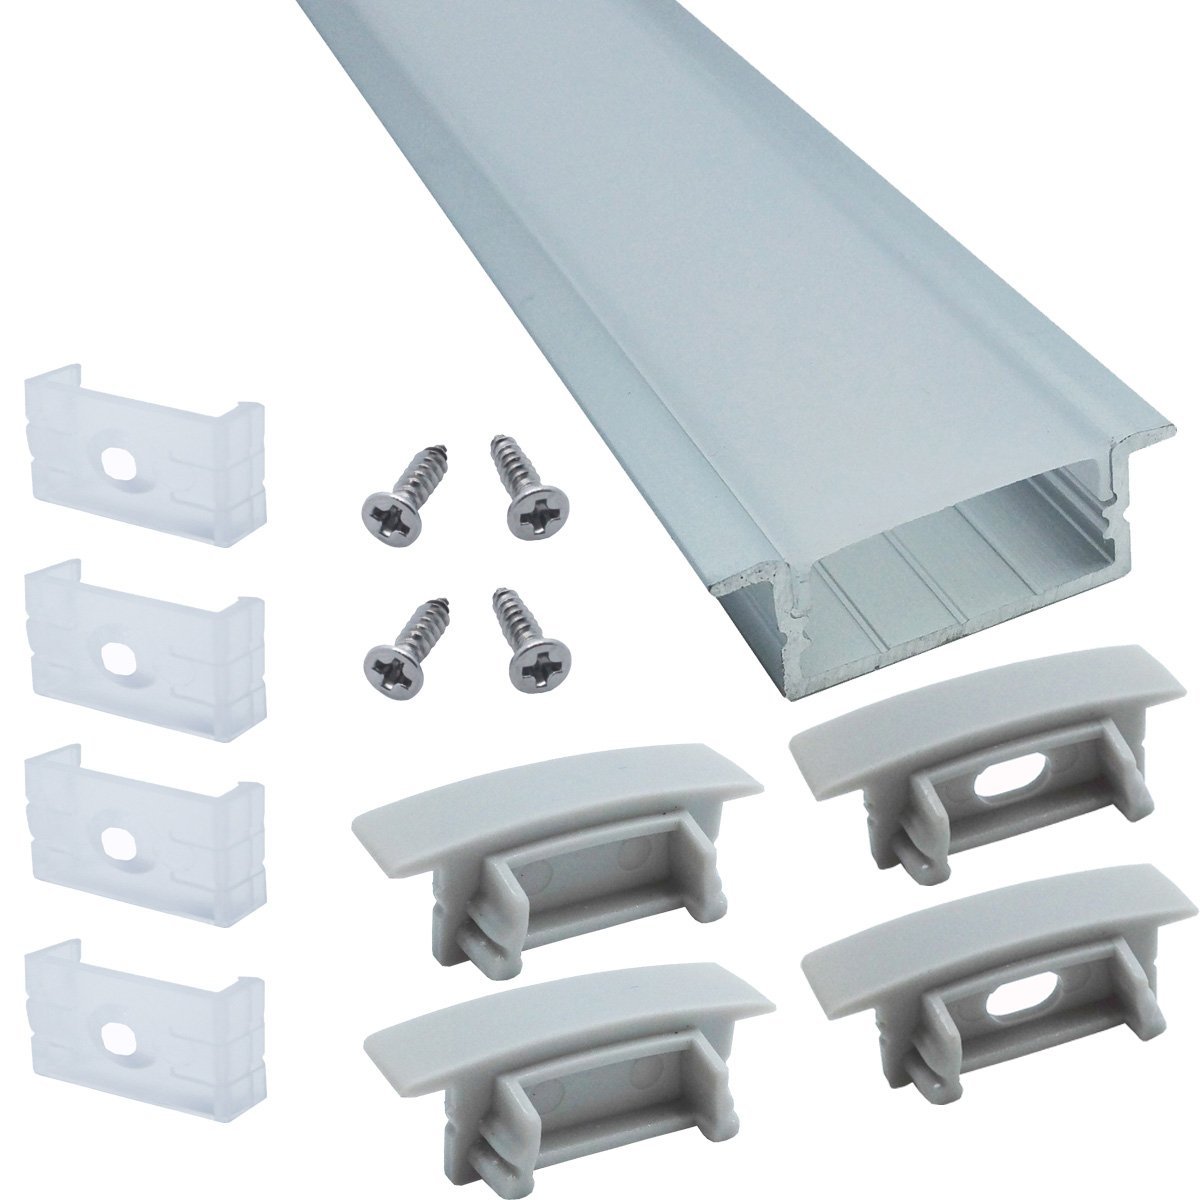 Litever 6-Pack 1M/3.3ft Wide Recess Embeded Aluminum LED Channels with Oyster Diffuser Covers End Caps Mounting Clips for Max 18mm Wide LED Strip Mouning -LL-007-WR-[6 Pack] by Litever